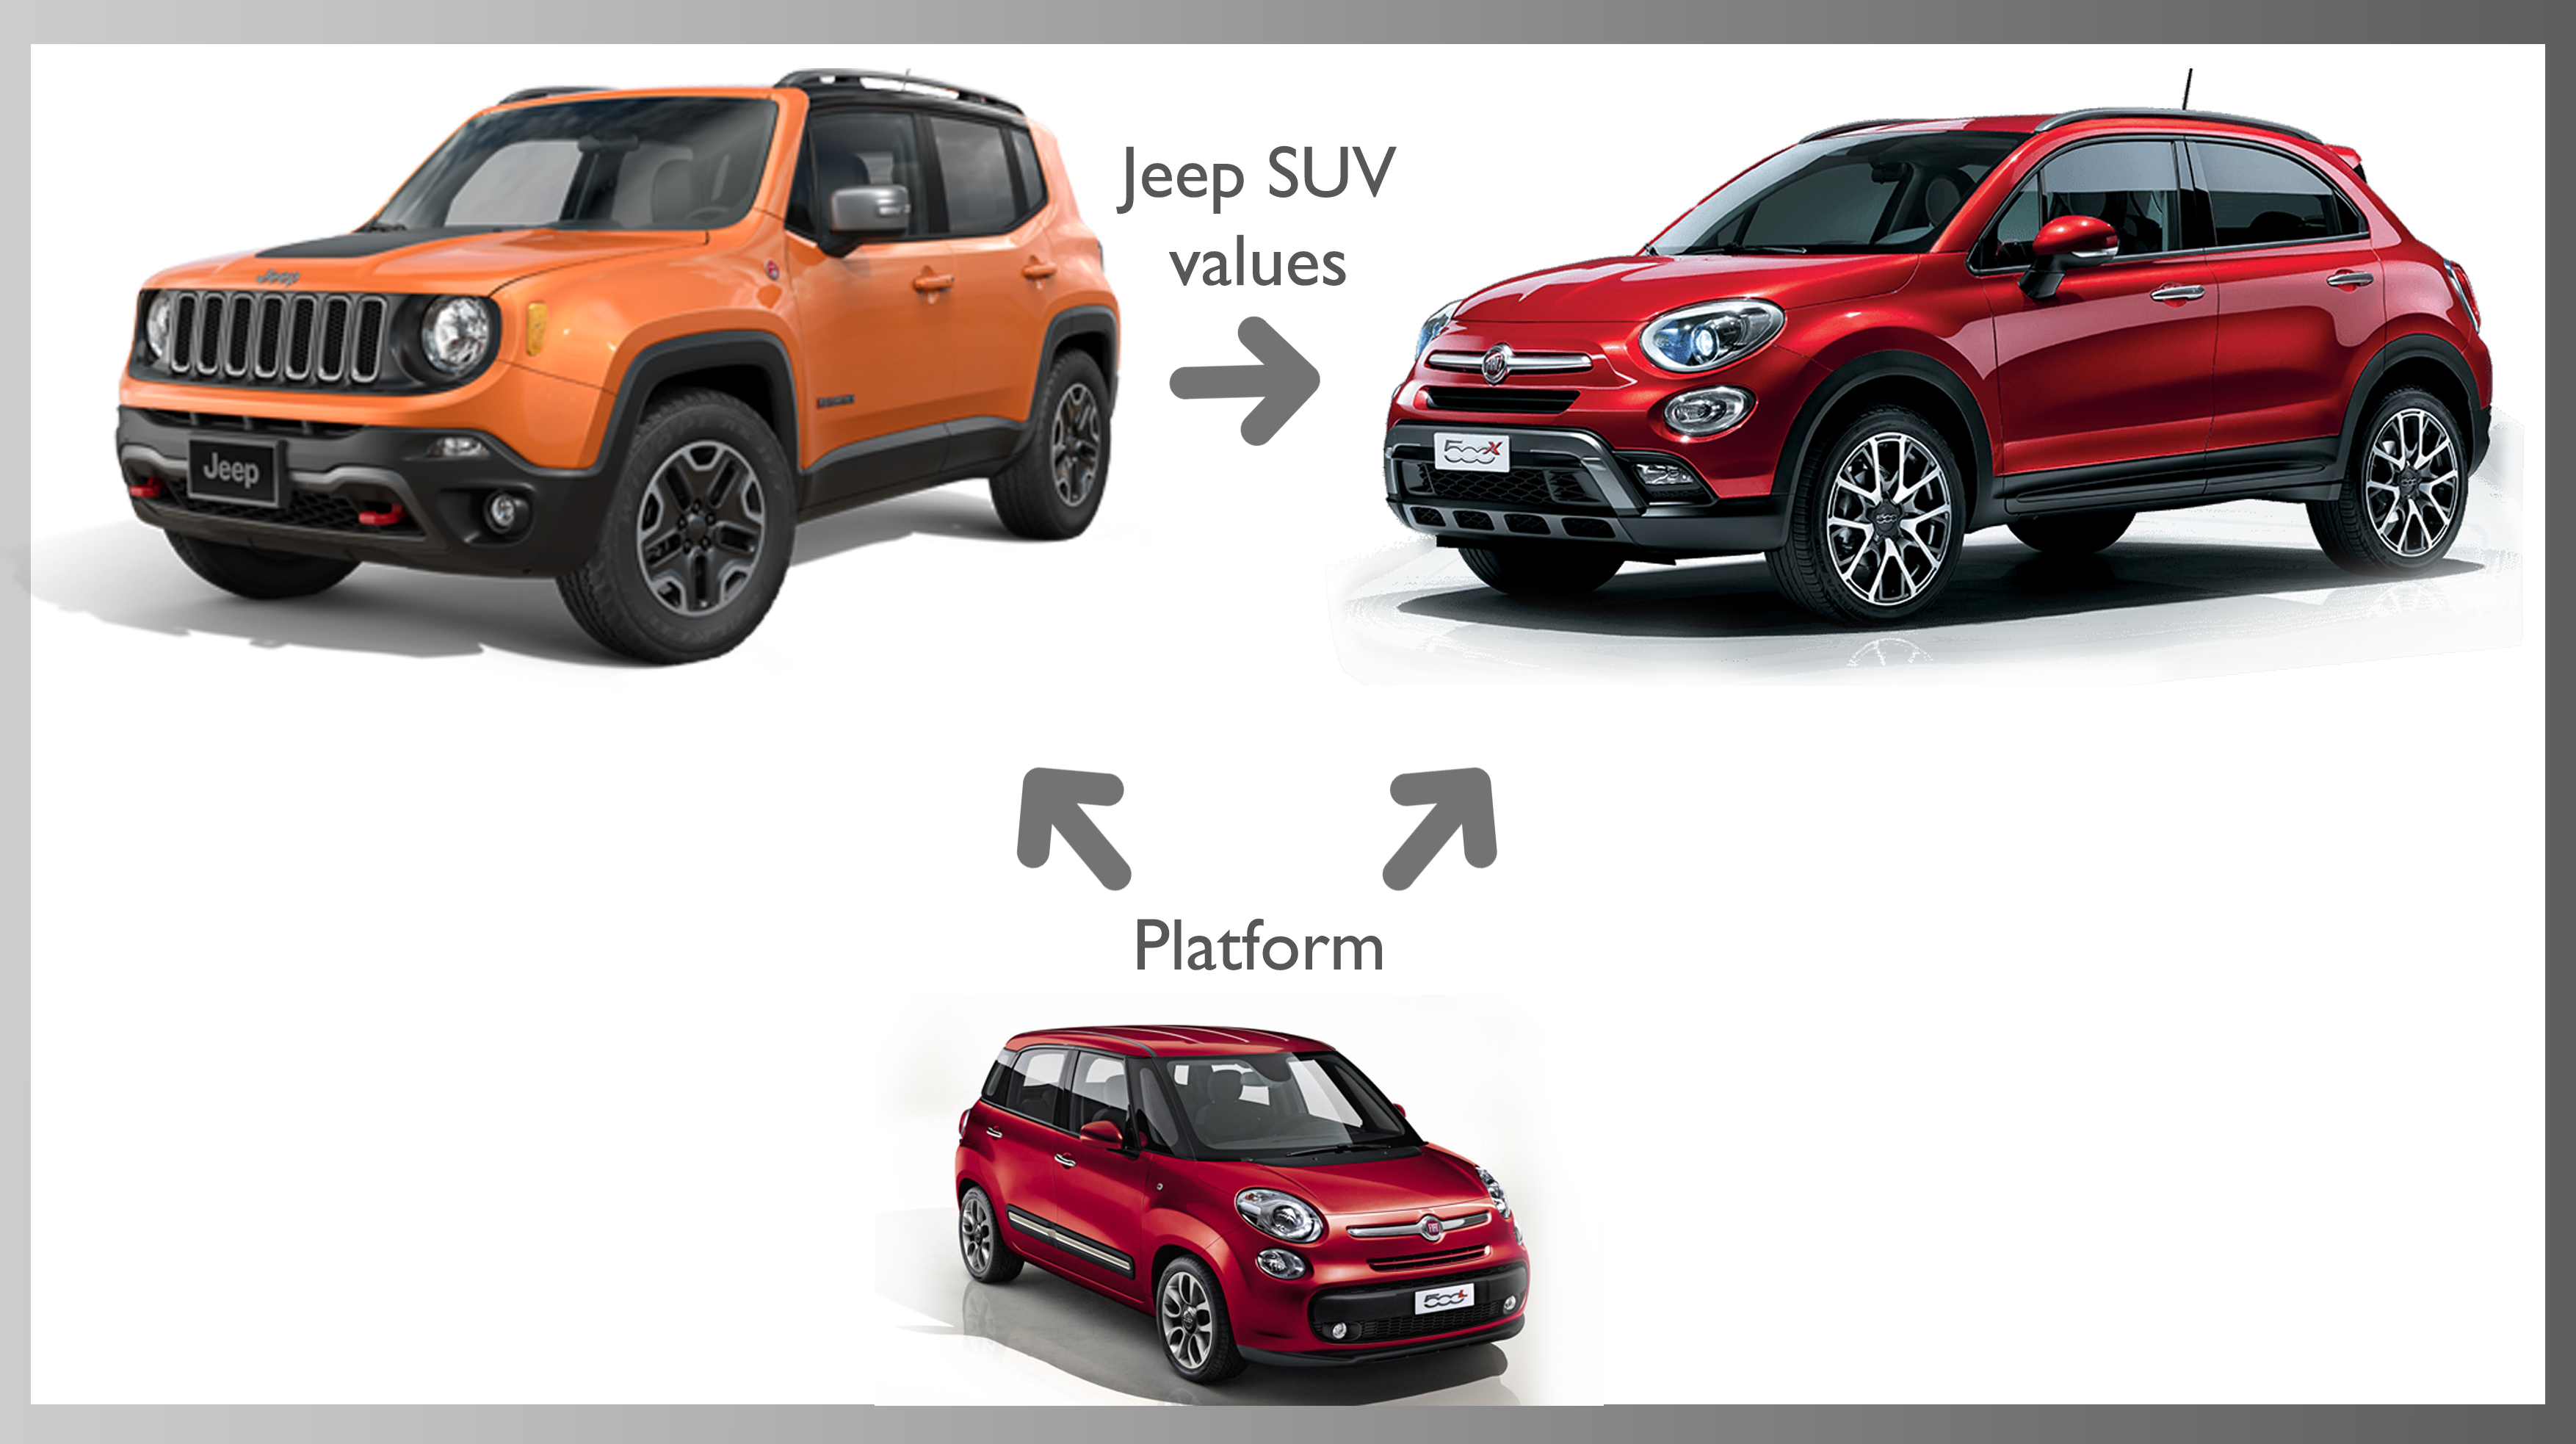 difficult these cabrio fiat countryman make view squeeze cars car premium separates really the on fuel price miles tanks over it s a what mini but both dad is small tank cute to family of from fiatexterior and them